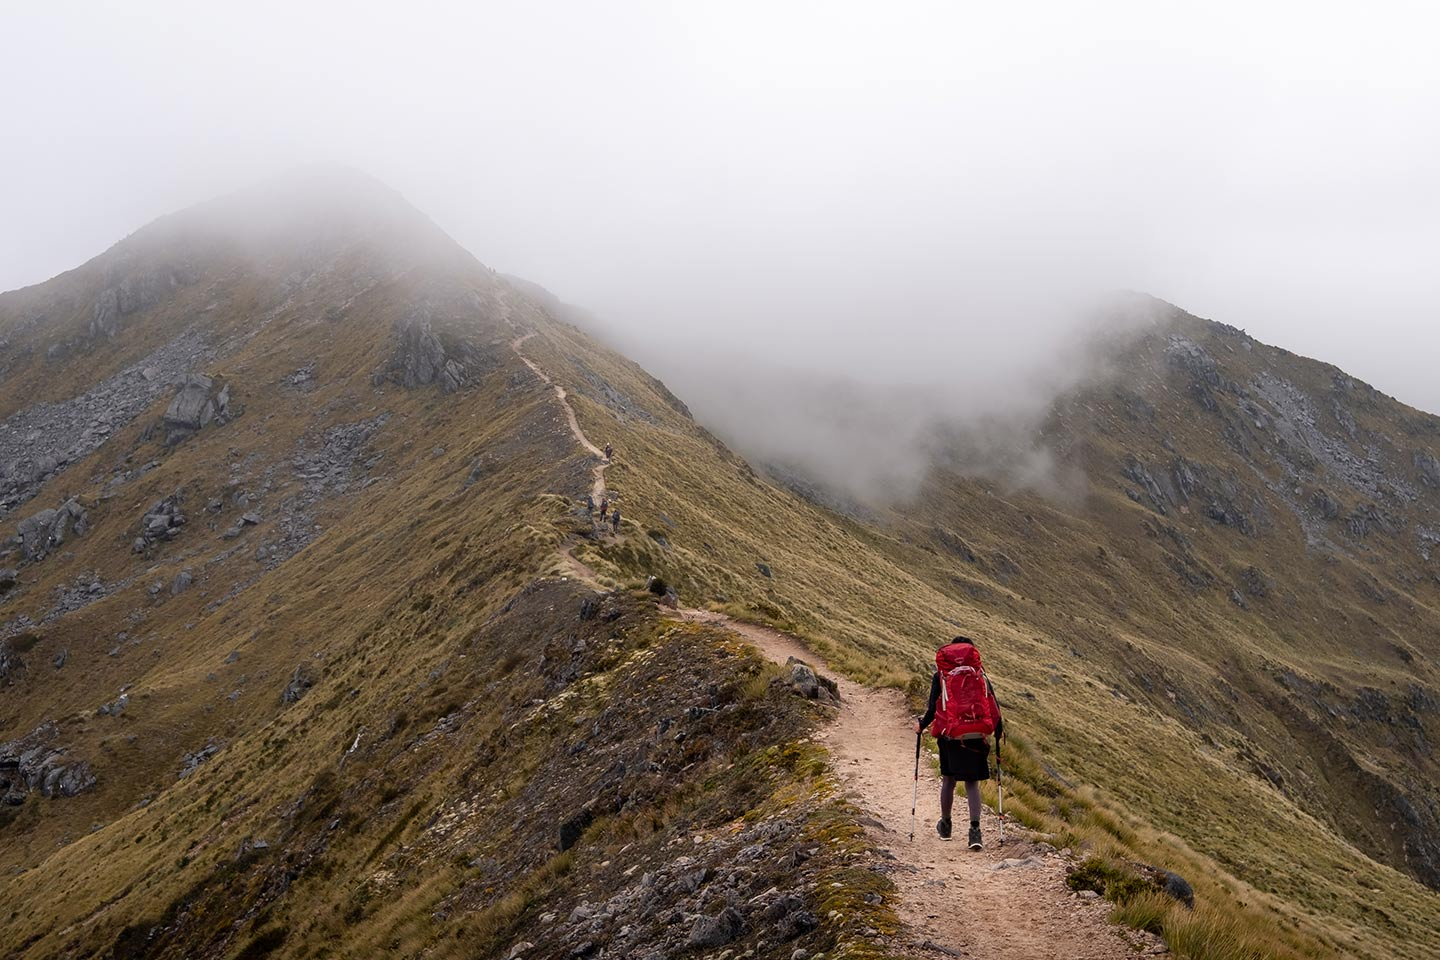 A woman walks along an exposed ridge line on the Kepler Track towards clouds that cover the path in front of her.